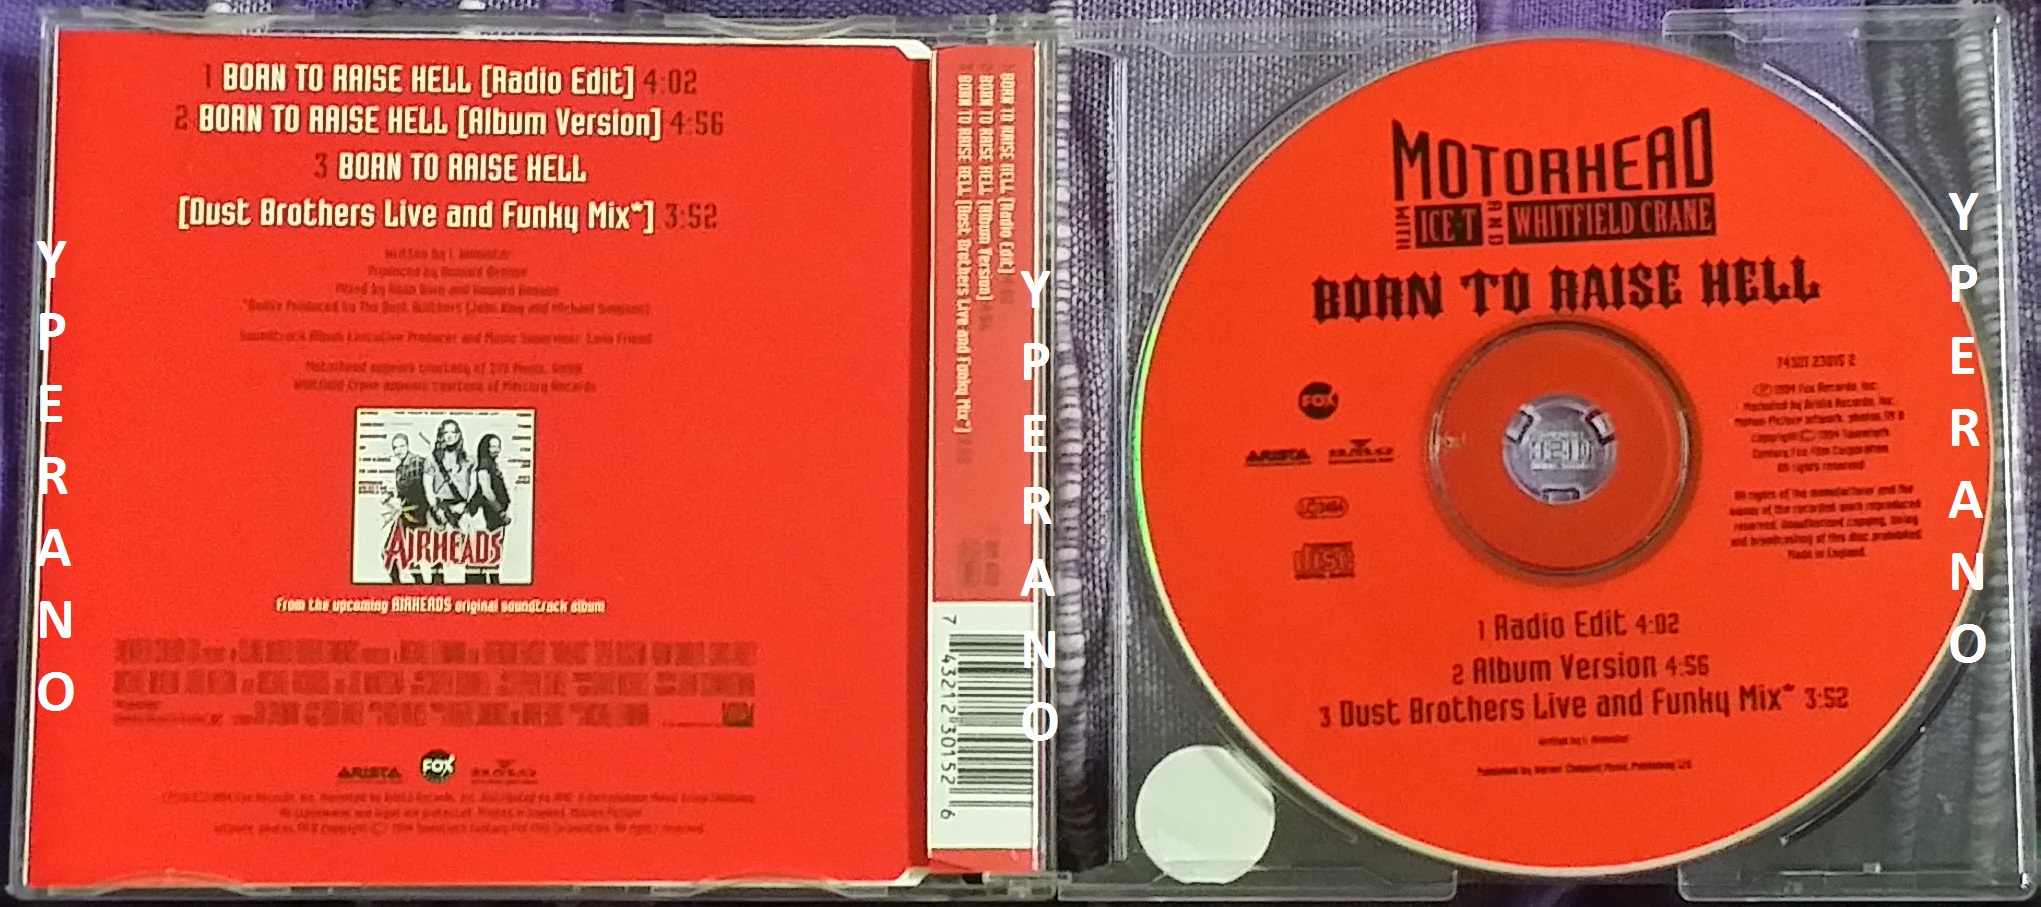 MOTORHEAD with Ice-T and Whitfield Crane: Born to raise Hell 3 track PROMO  UK CD  Check video